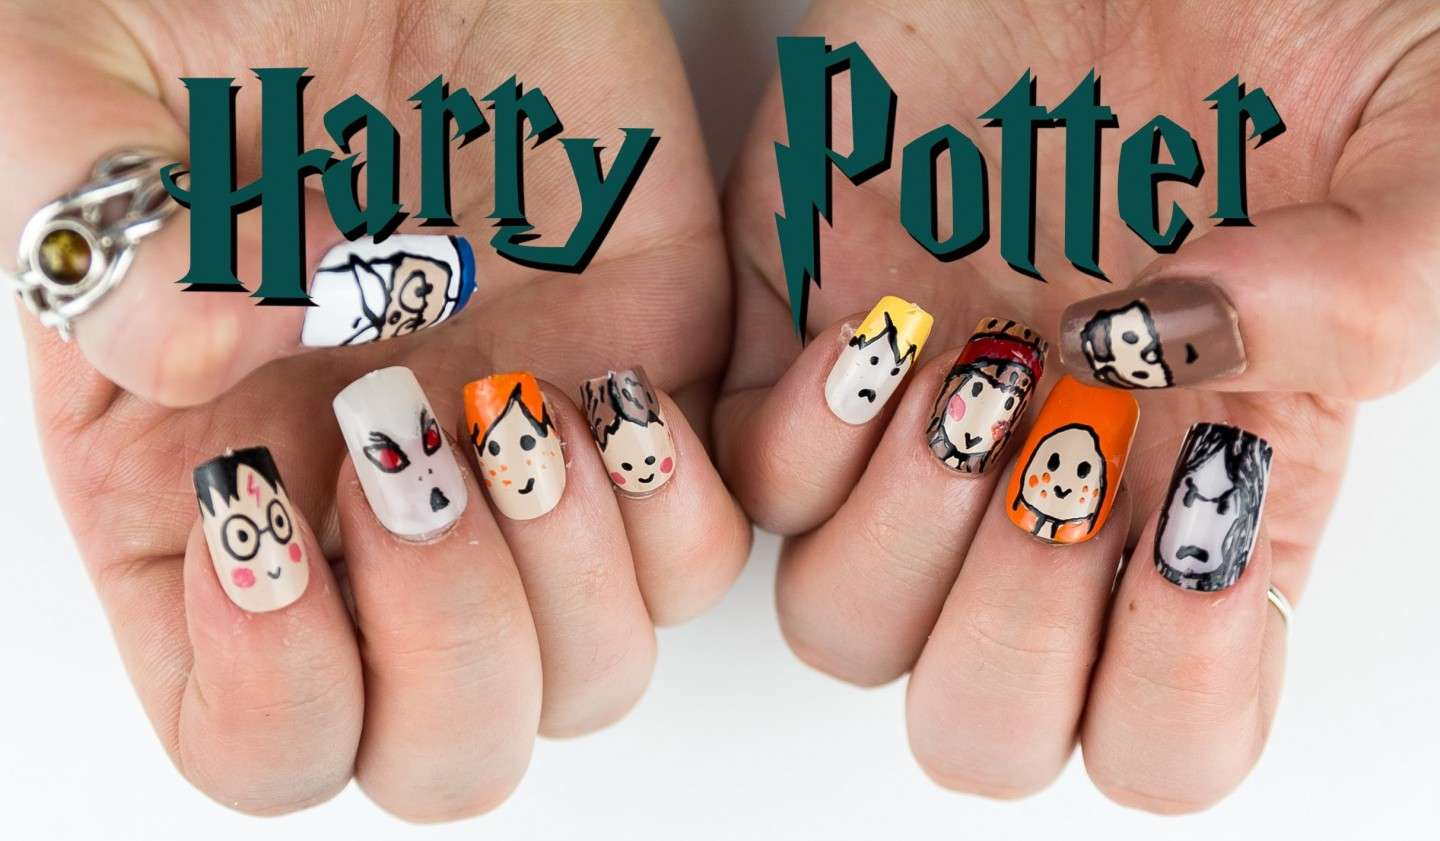 Nails harry potter